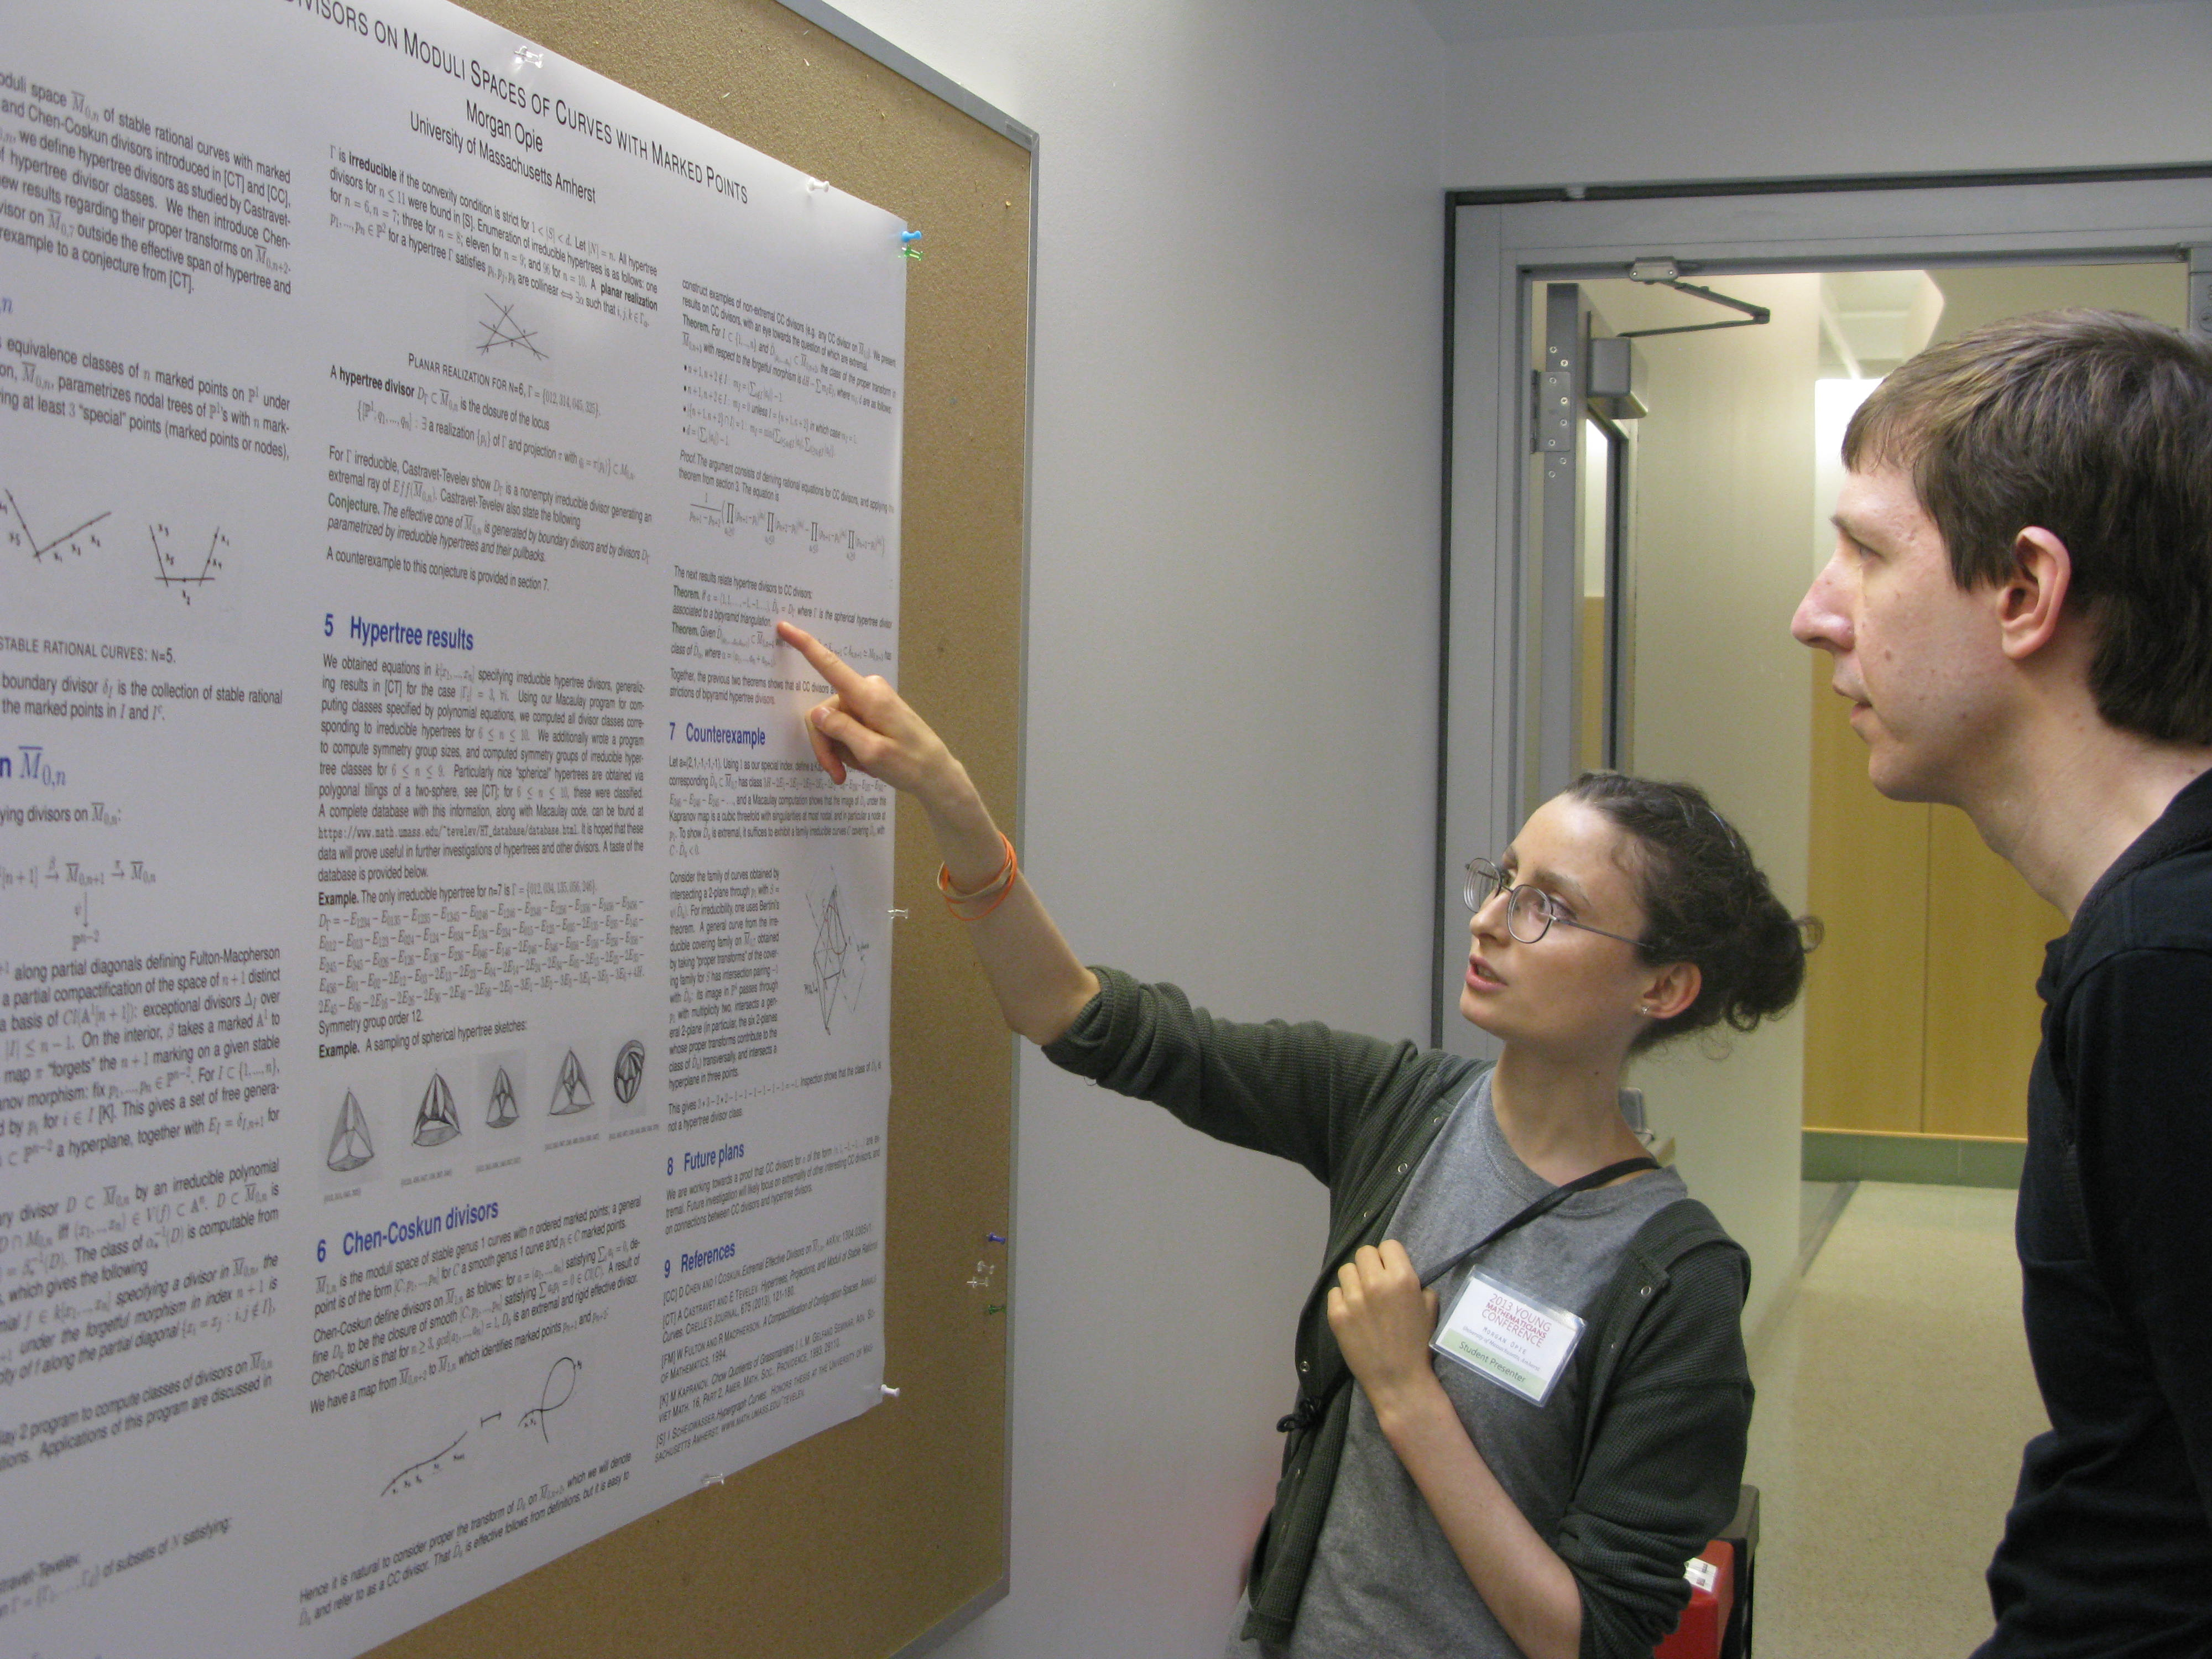 A poster presentation.